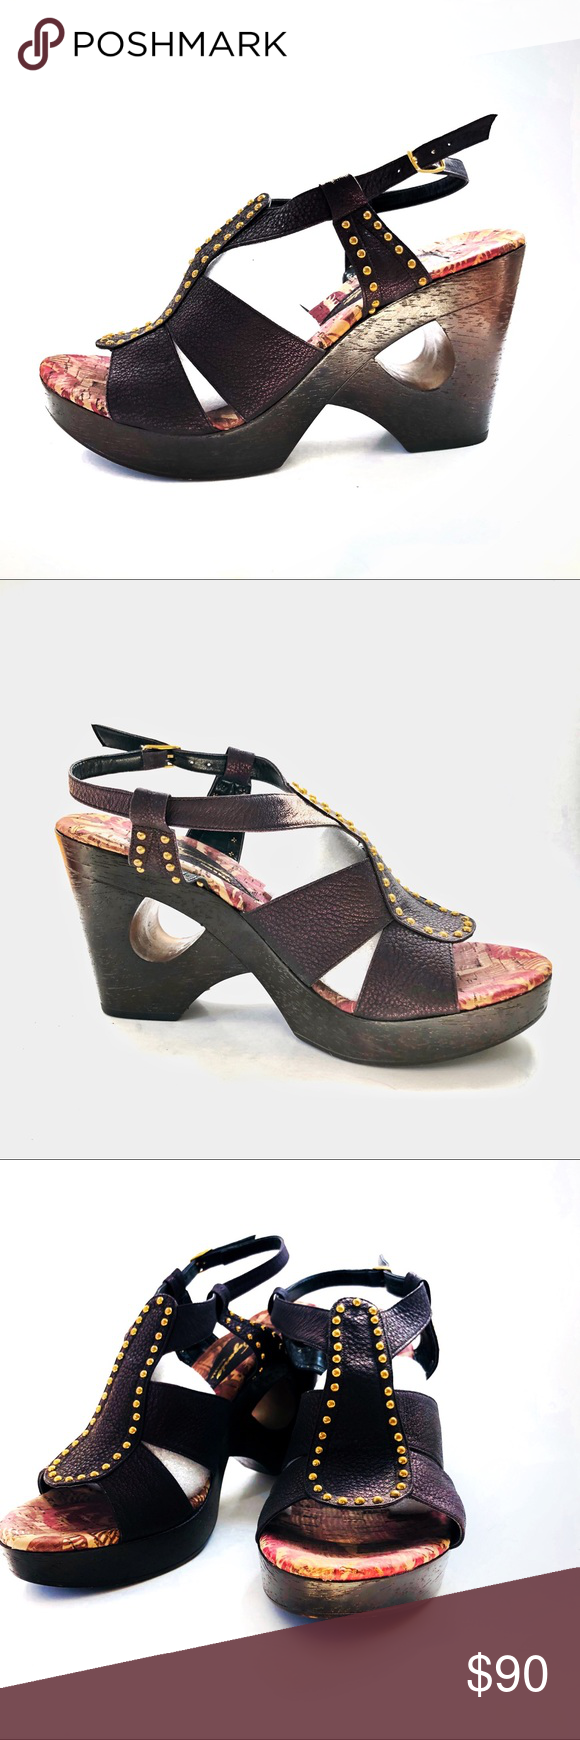 b3548d2f98f Dezario Wooden Platform Heels Never worn out of the house Leather upper has  a metallic purple sheen Questions and offers welcome! Dezario Shoes  Platforms